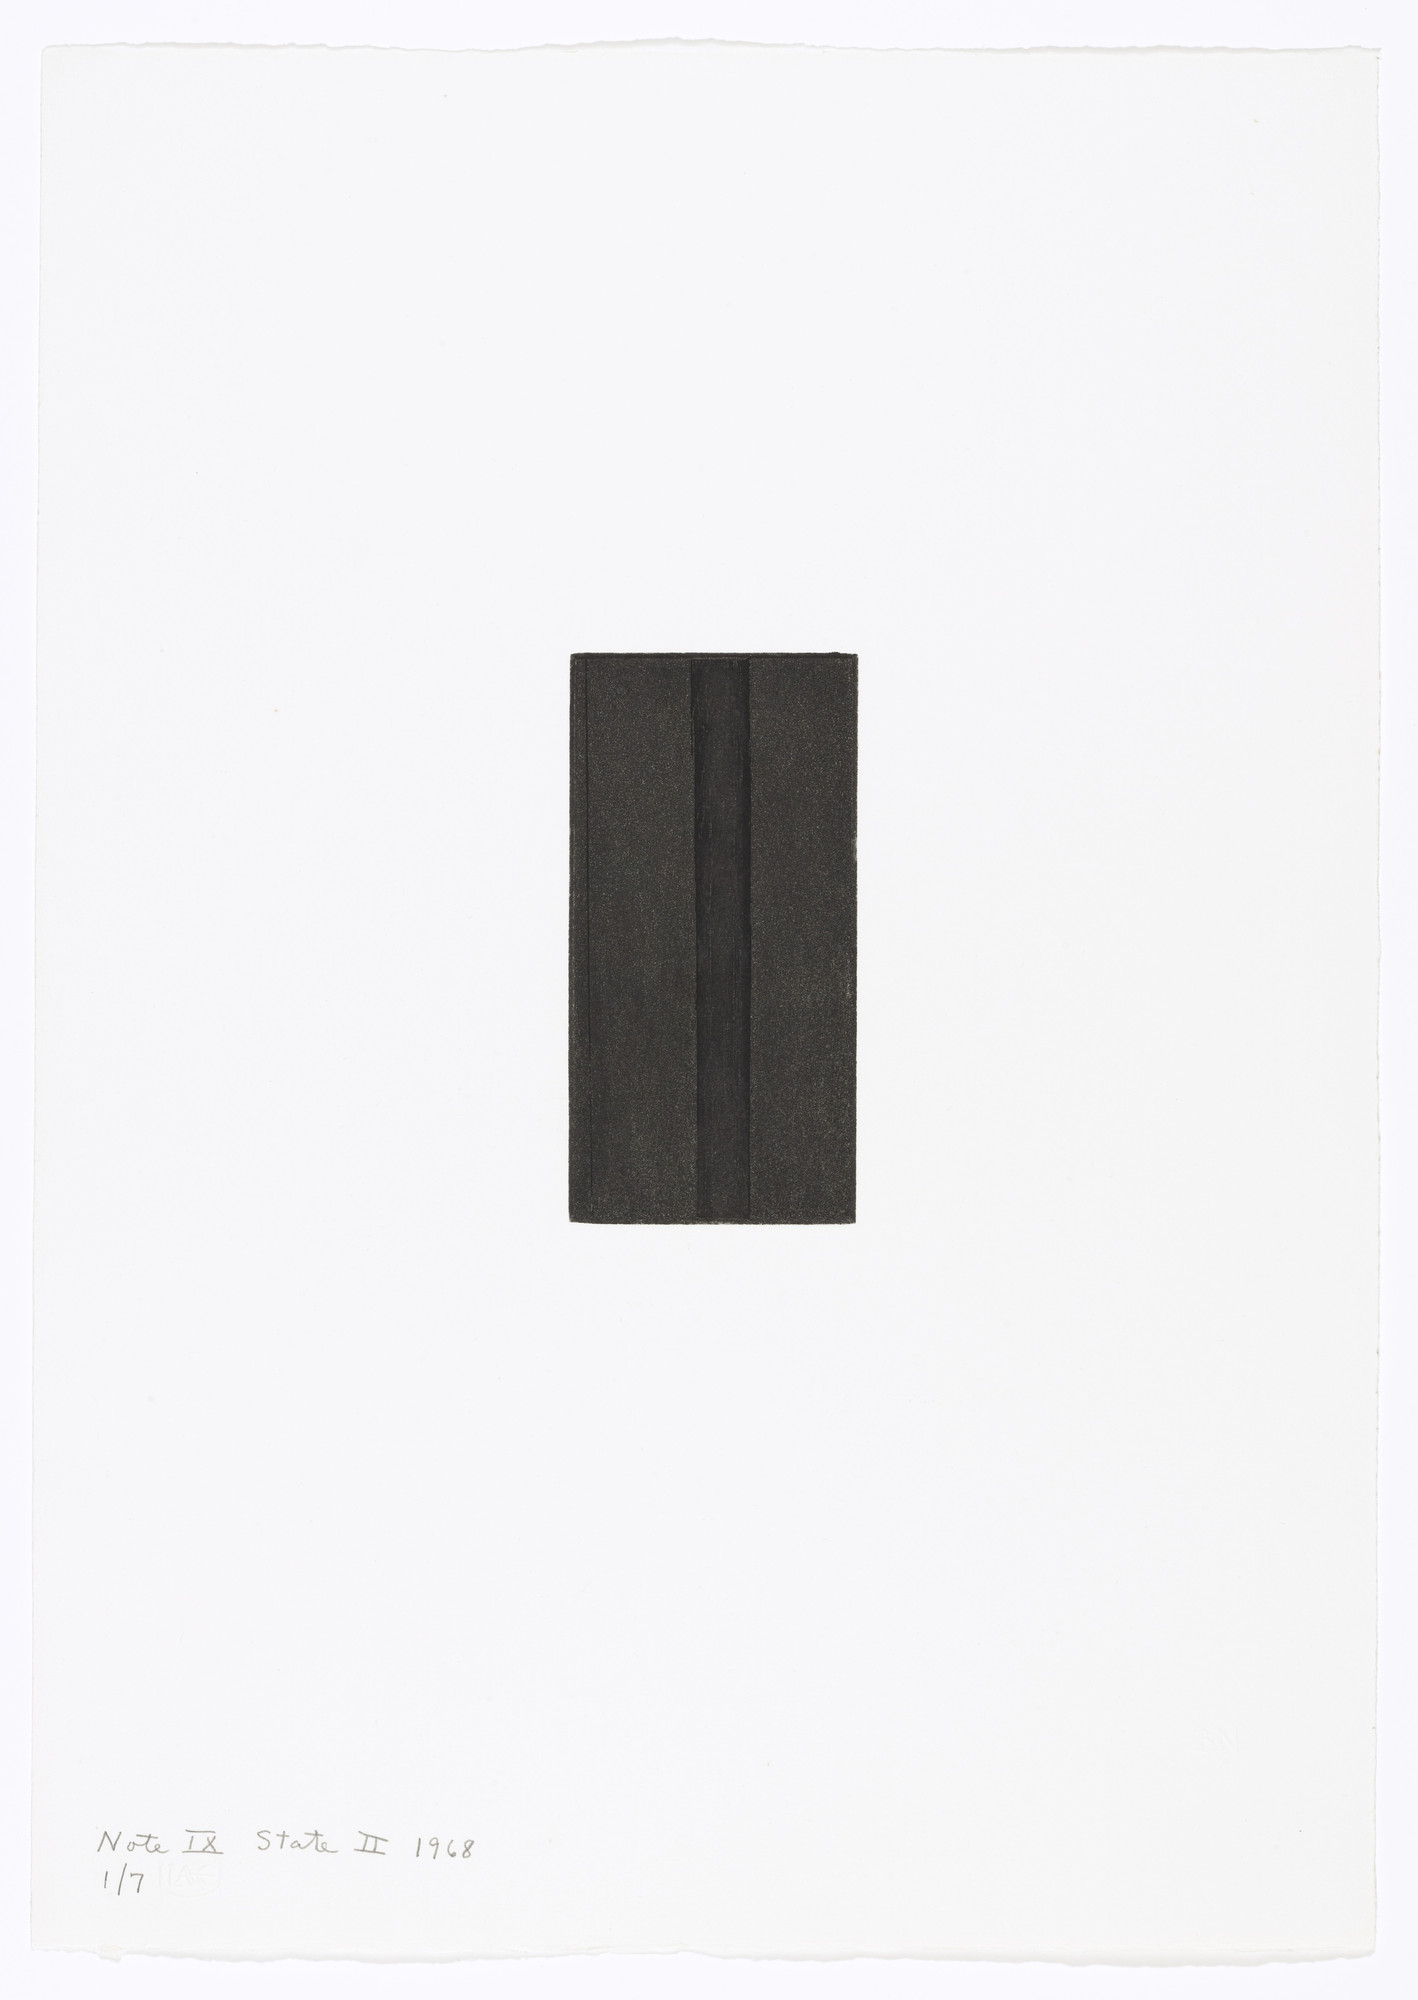 Barnett Newman. Note IX (State II) from Notes. 1968